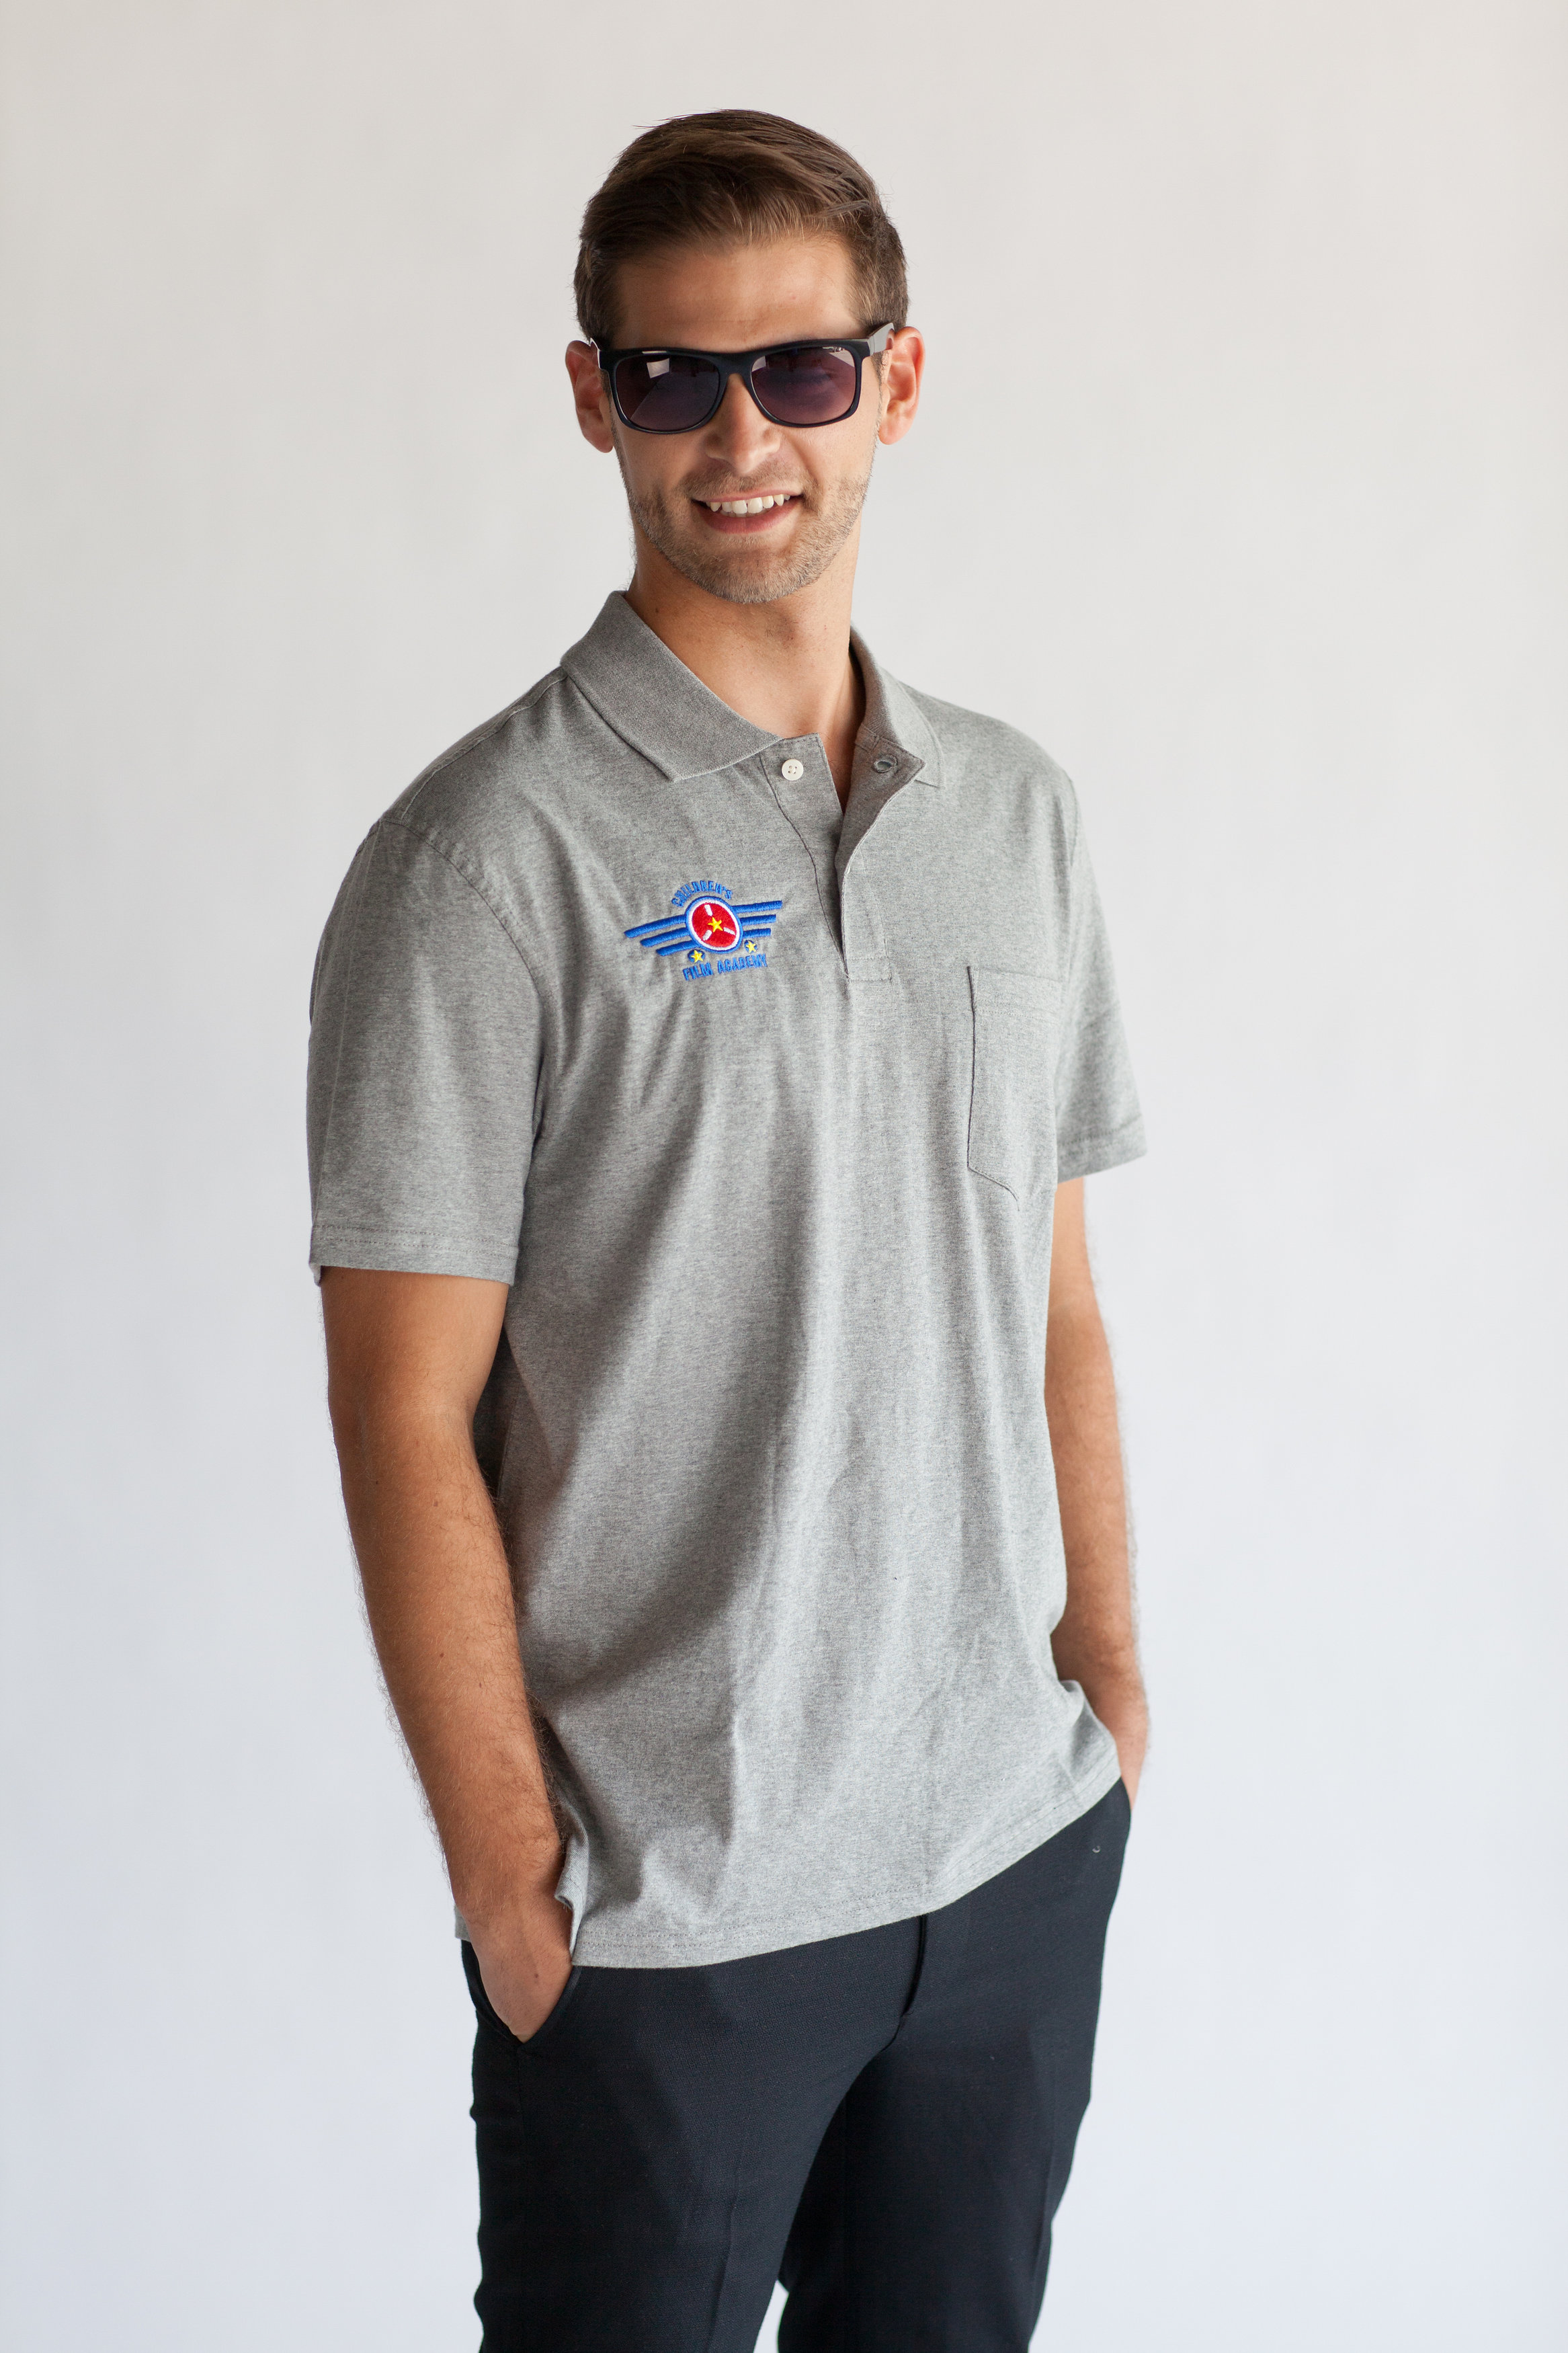 Men's Grey Academy Polo $18